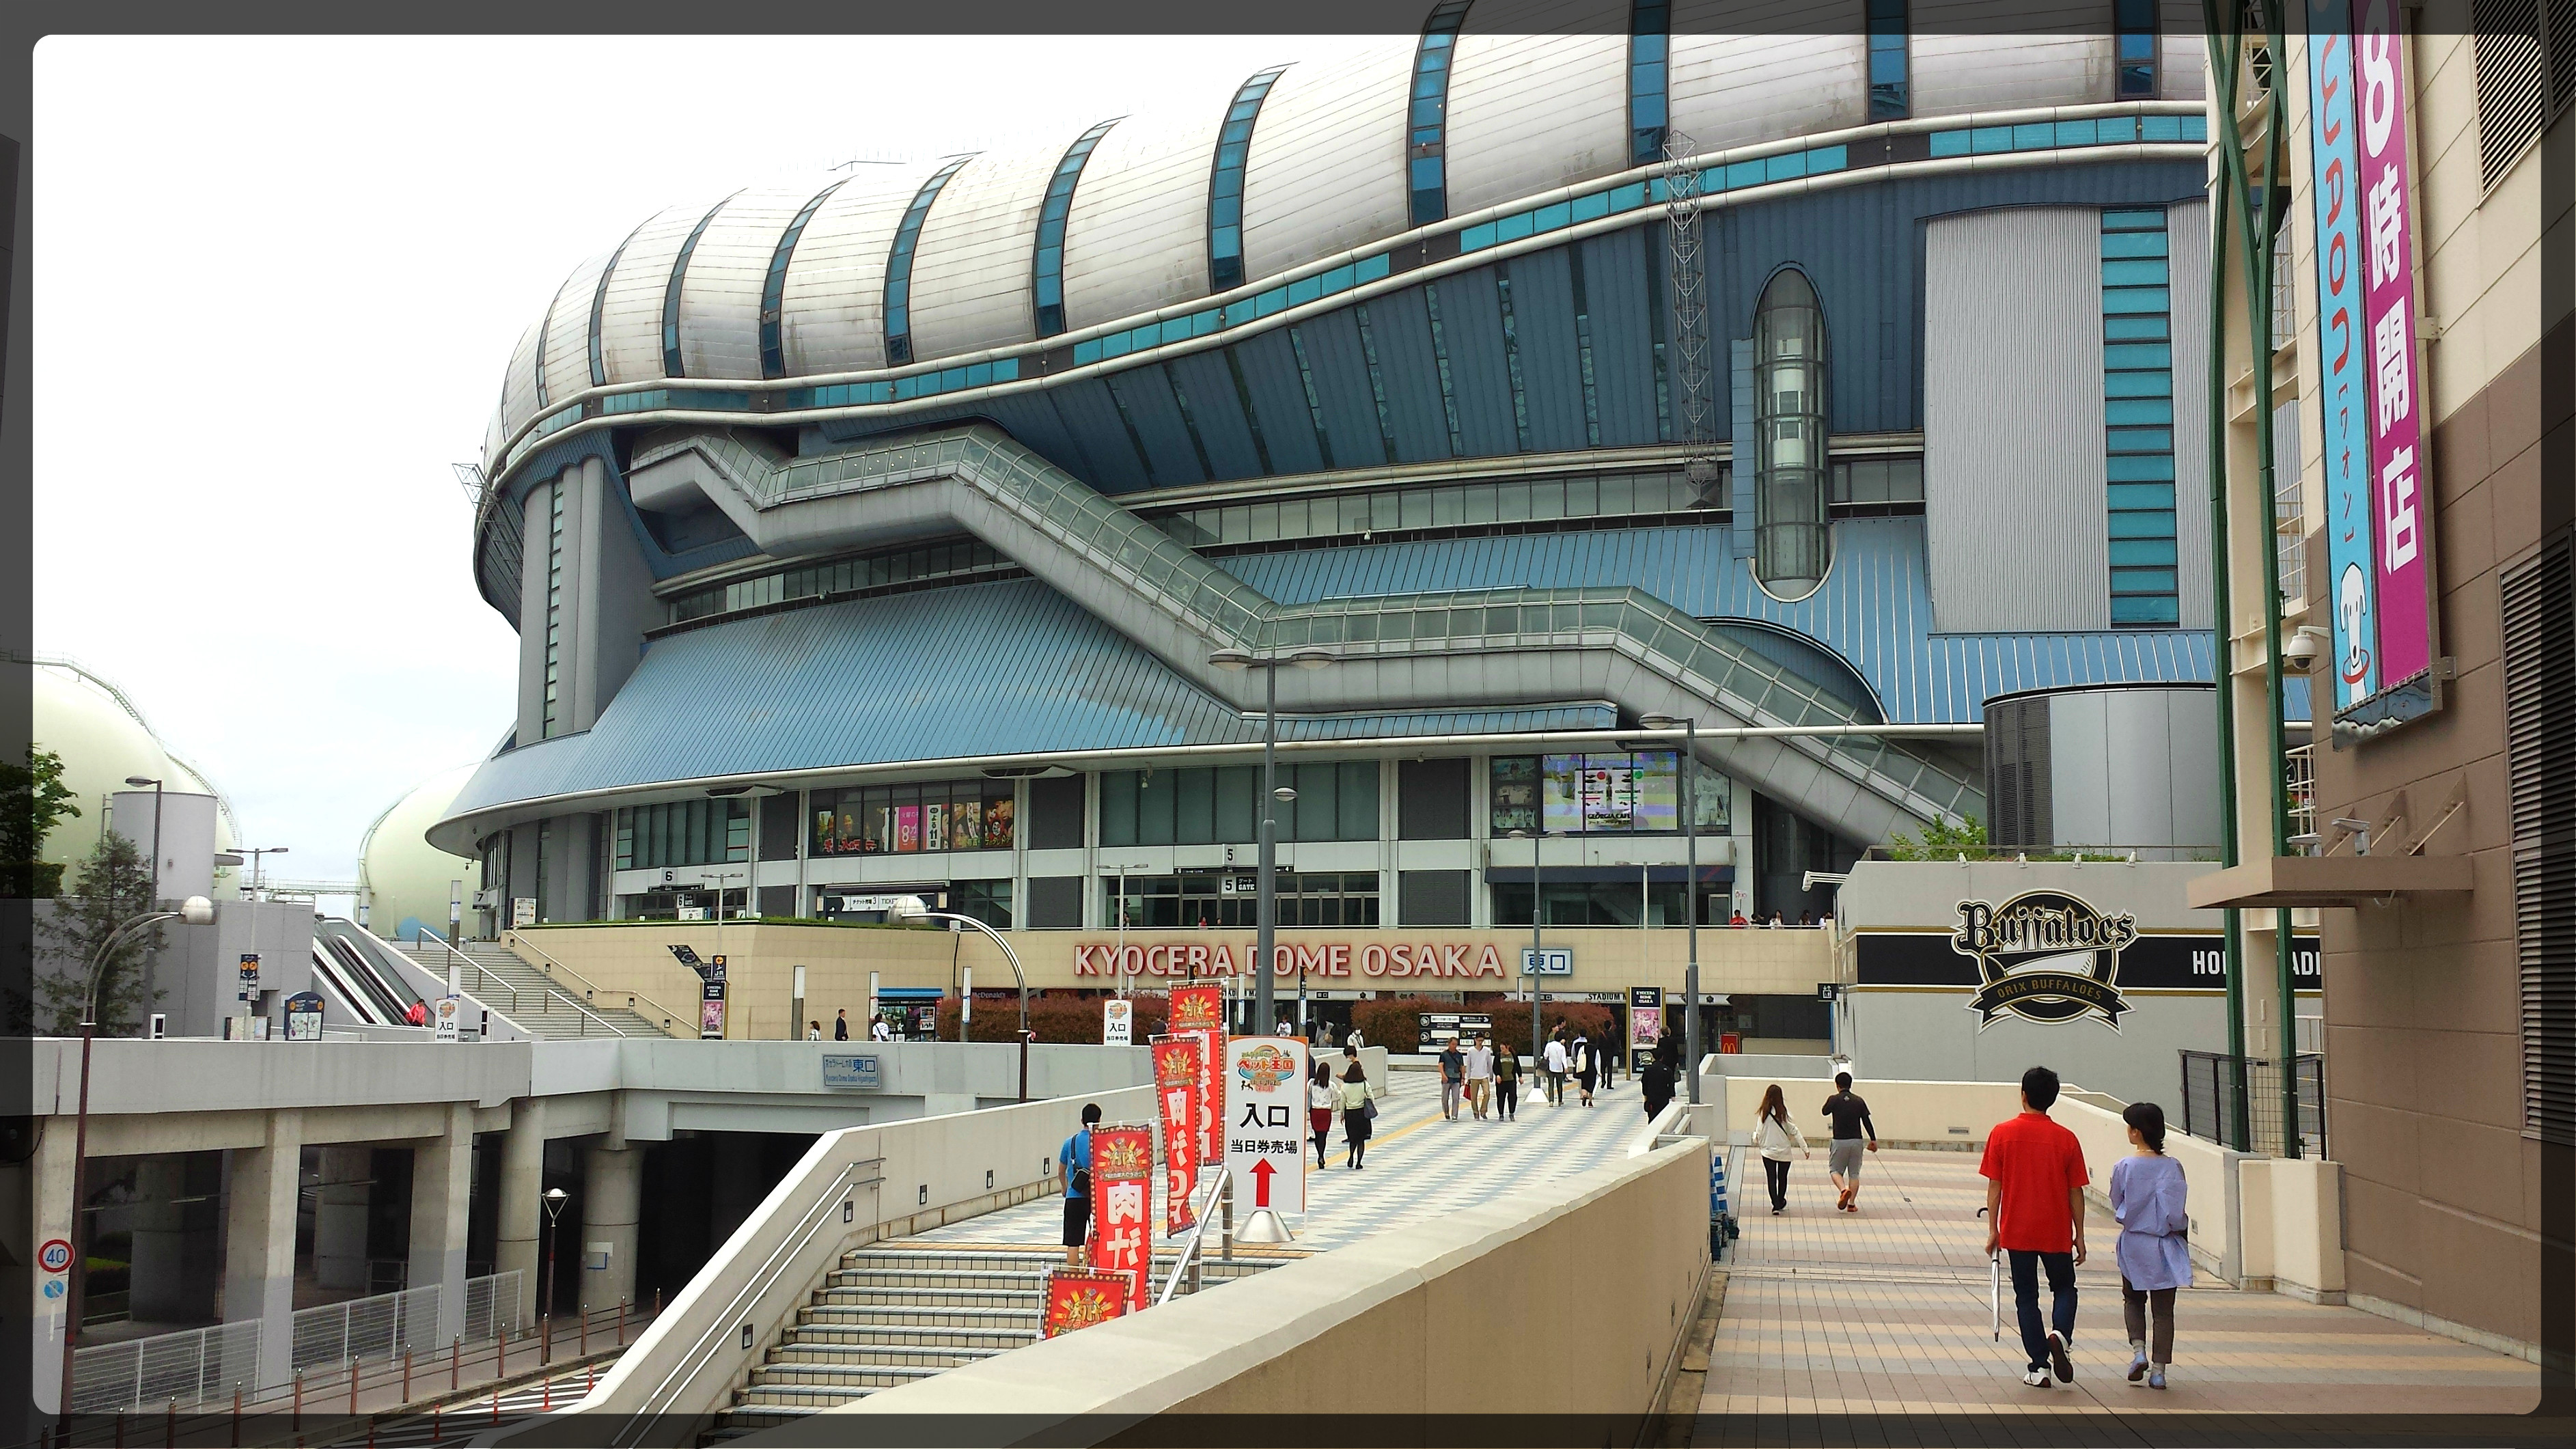 Visiting Flea Markets in Kansai. Kyocera Dome Osaka.